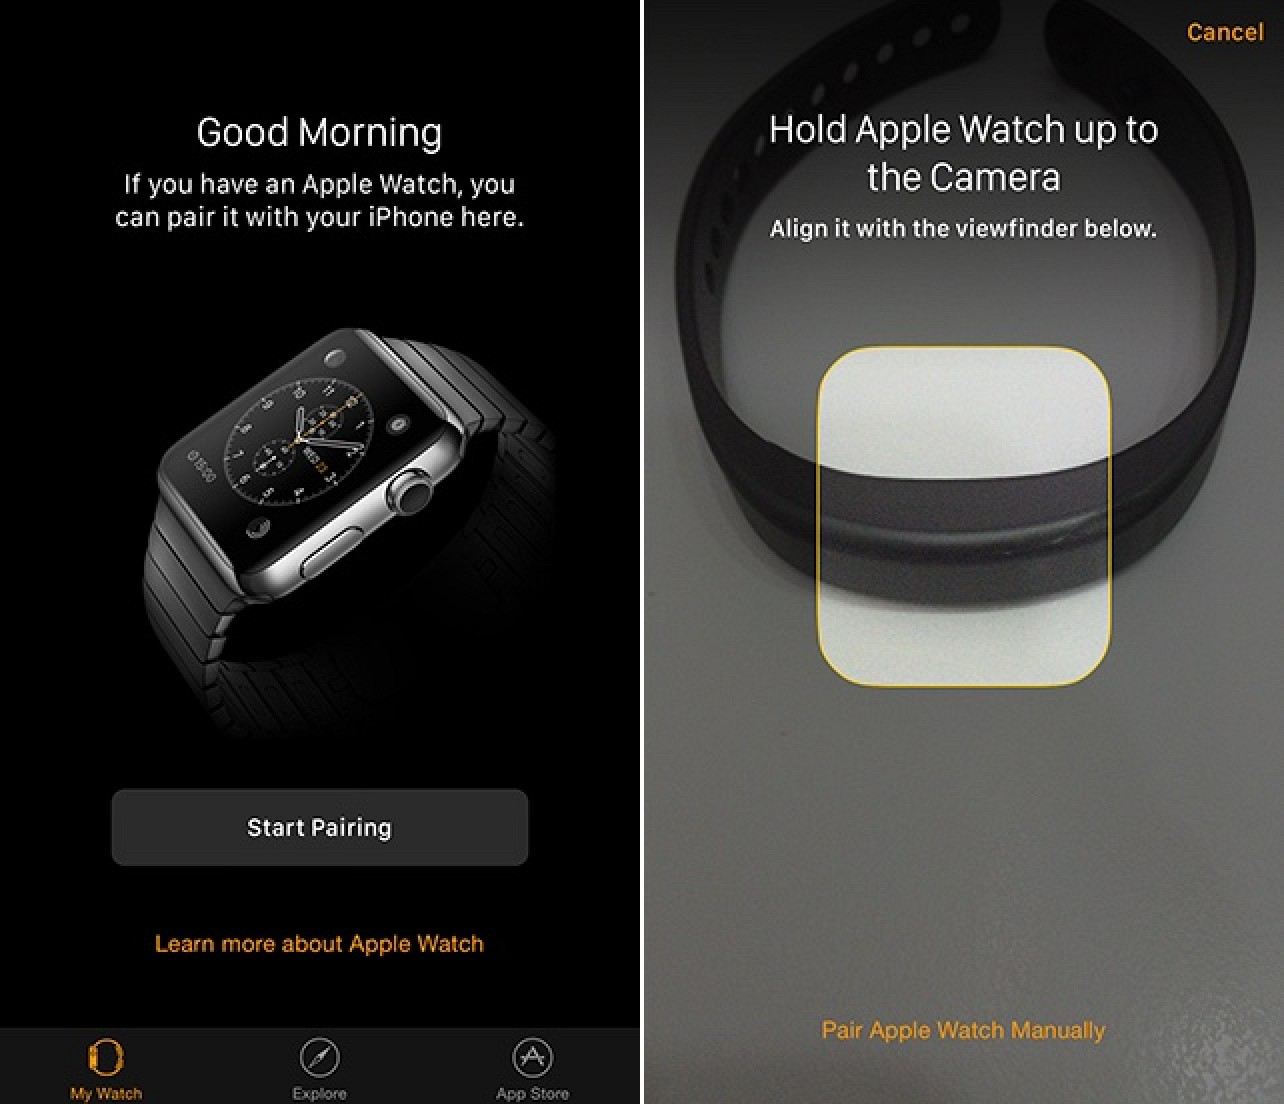 Watch Pairing with the iPhone companion app installed with iOS 8.2